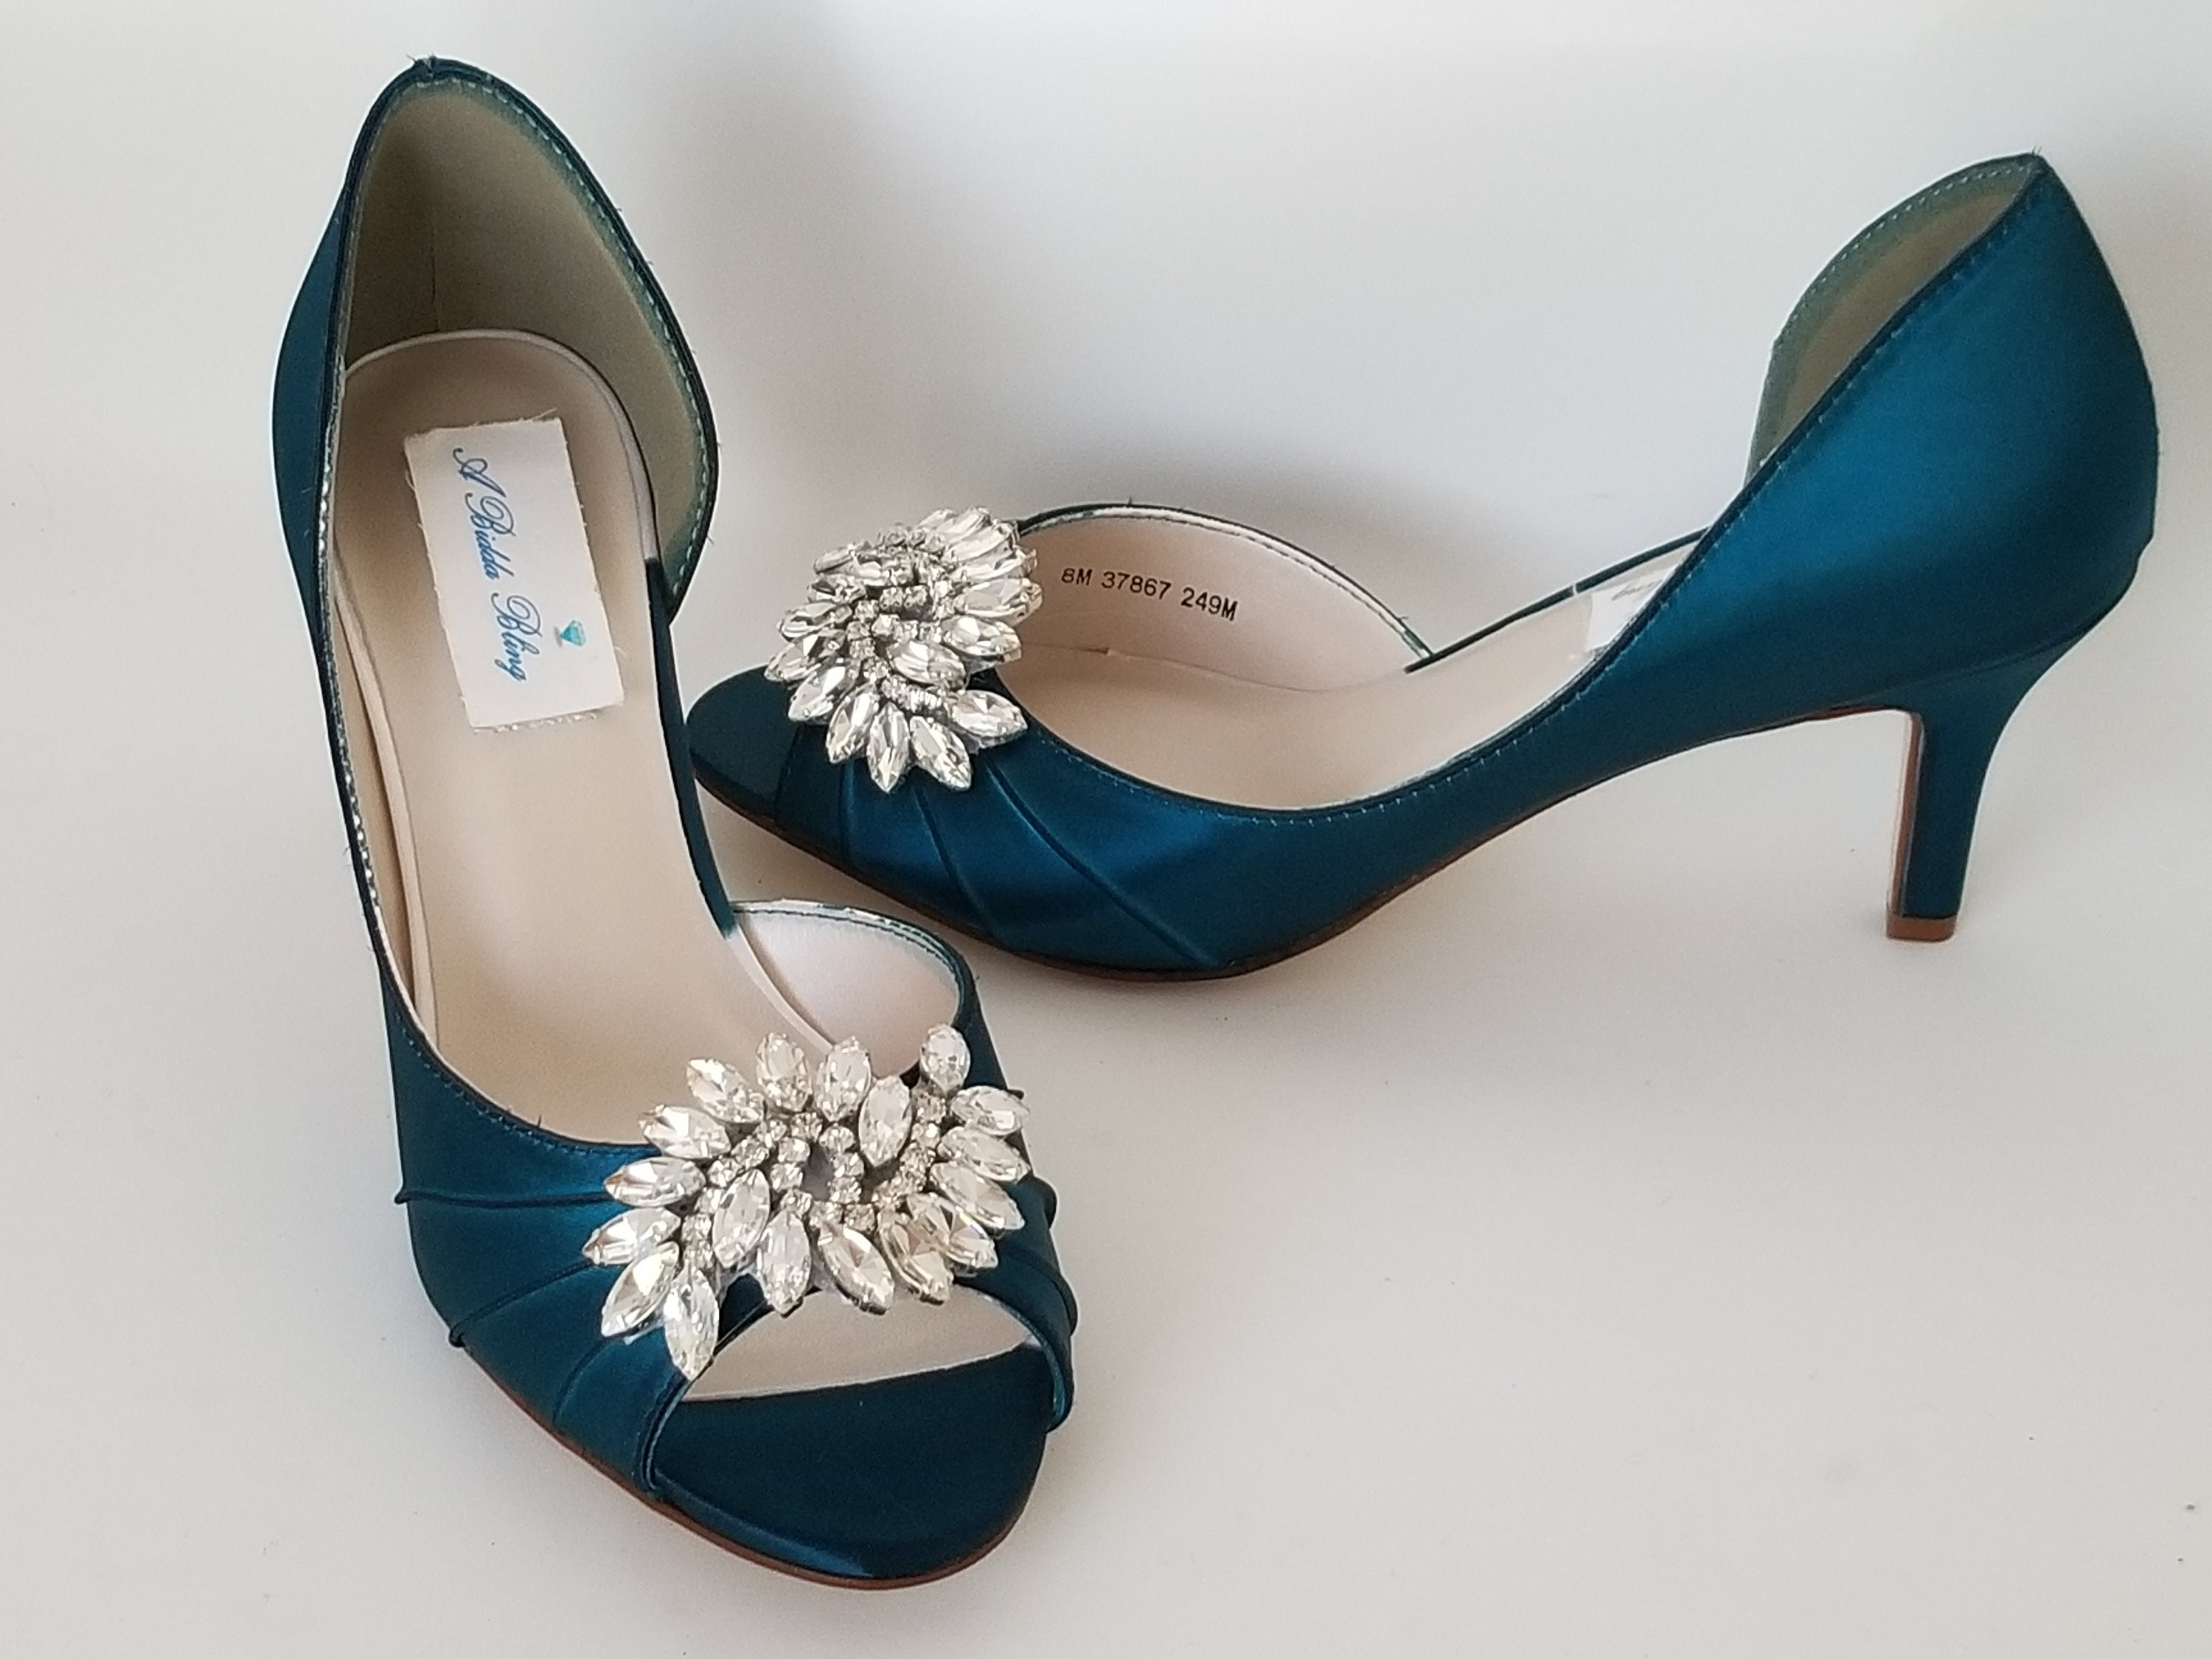 4b5048277d7 Teal Wedding Shoes Teal Bridal Shoes with Crystal Applique -100 Additional  Colors To Pick From Rose Gold Wedding Shoes